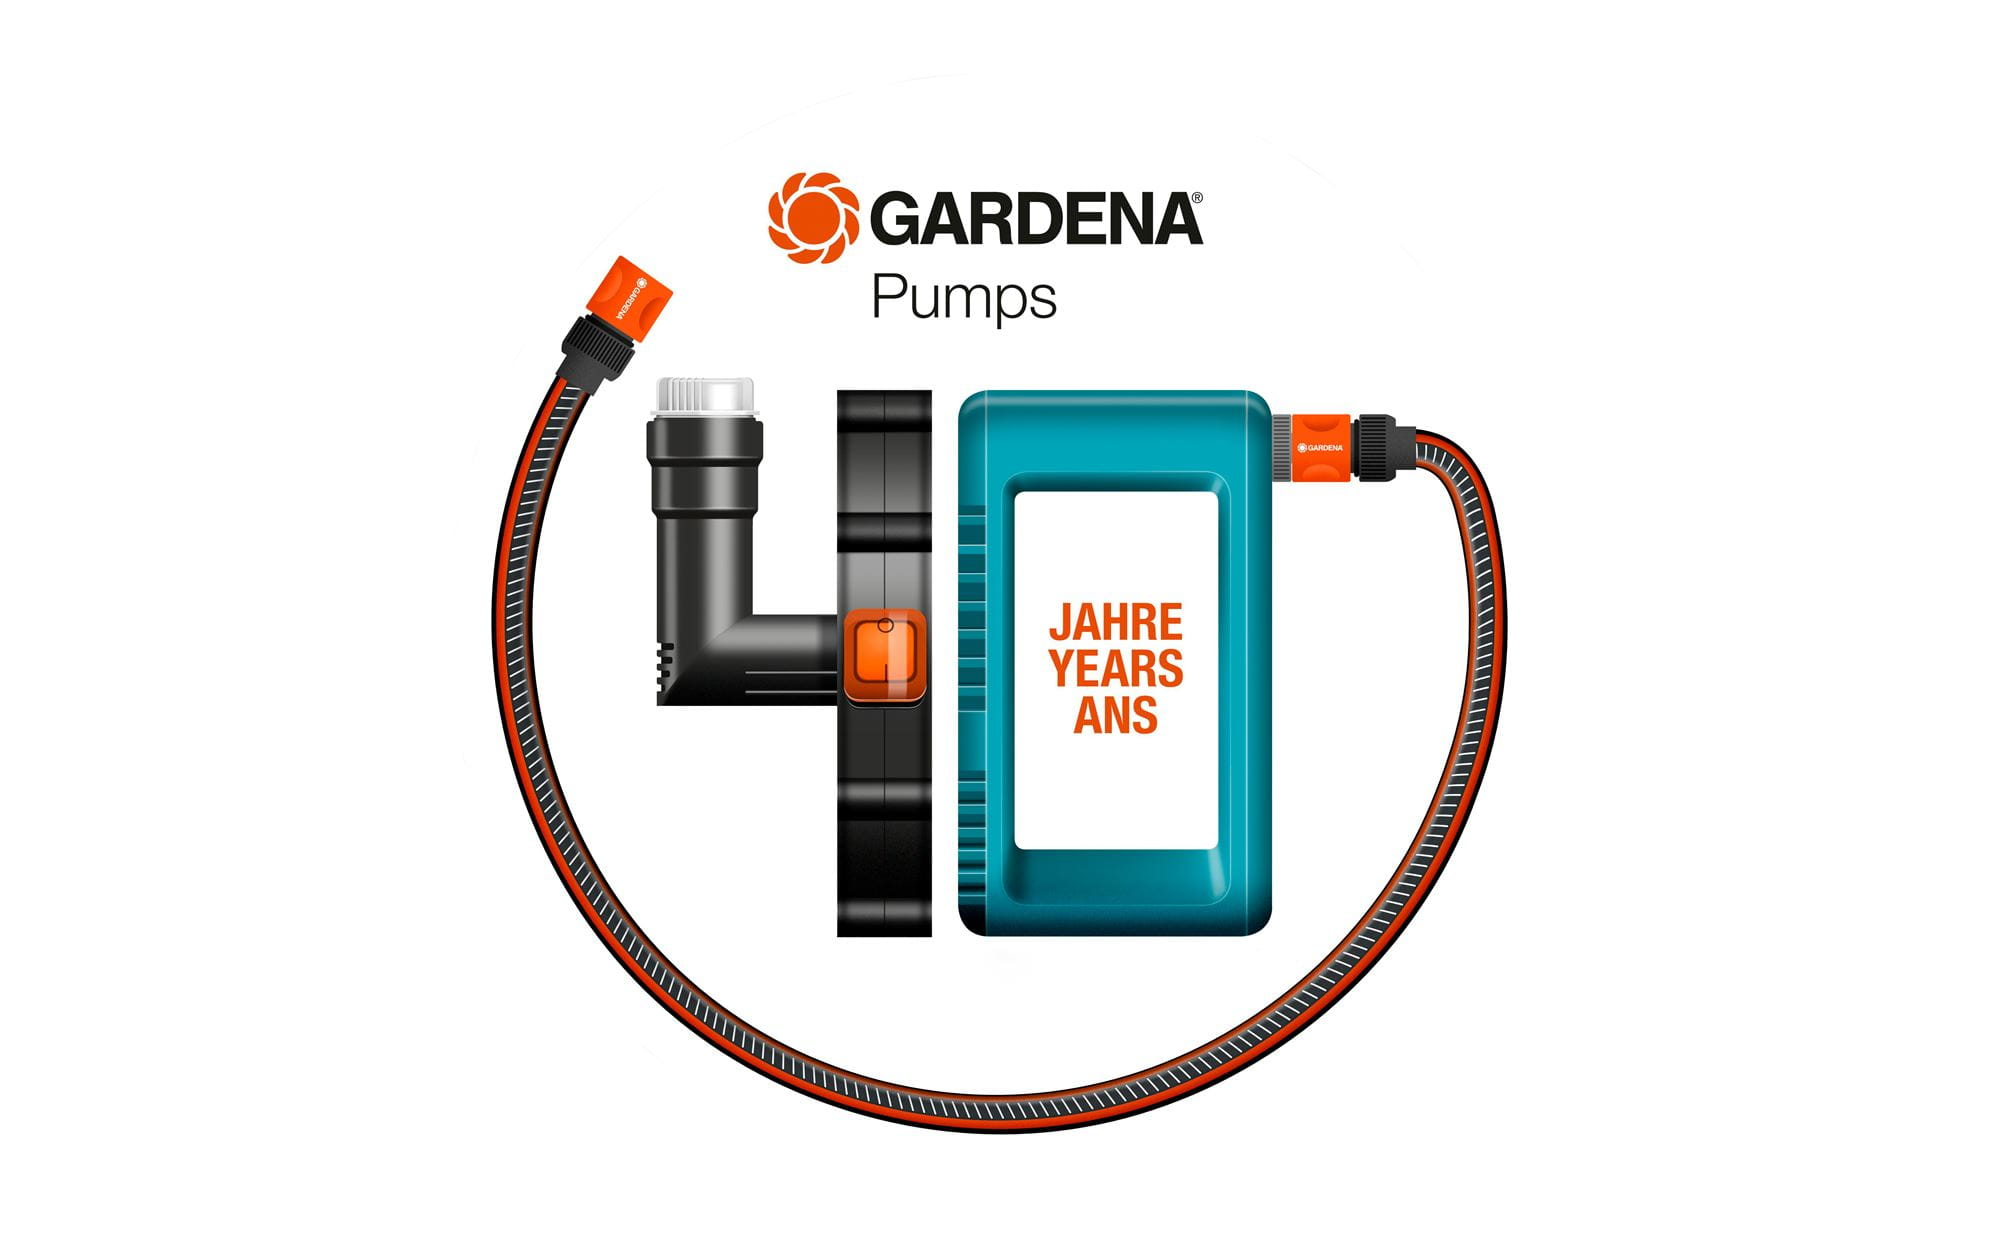 GARDENA - 40 years of innovation experience